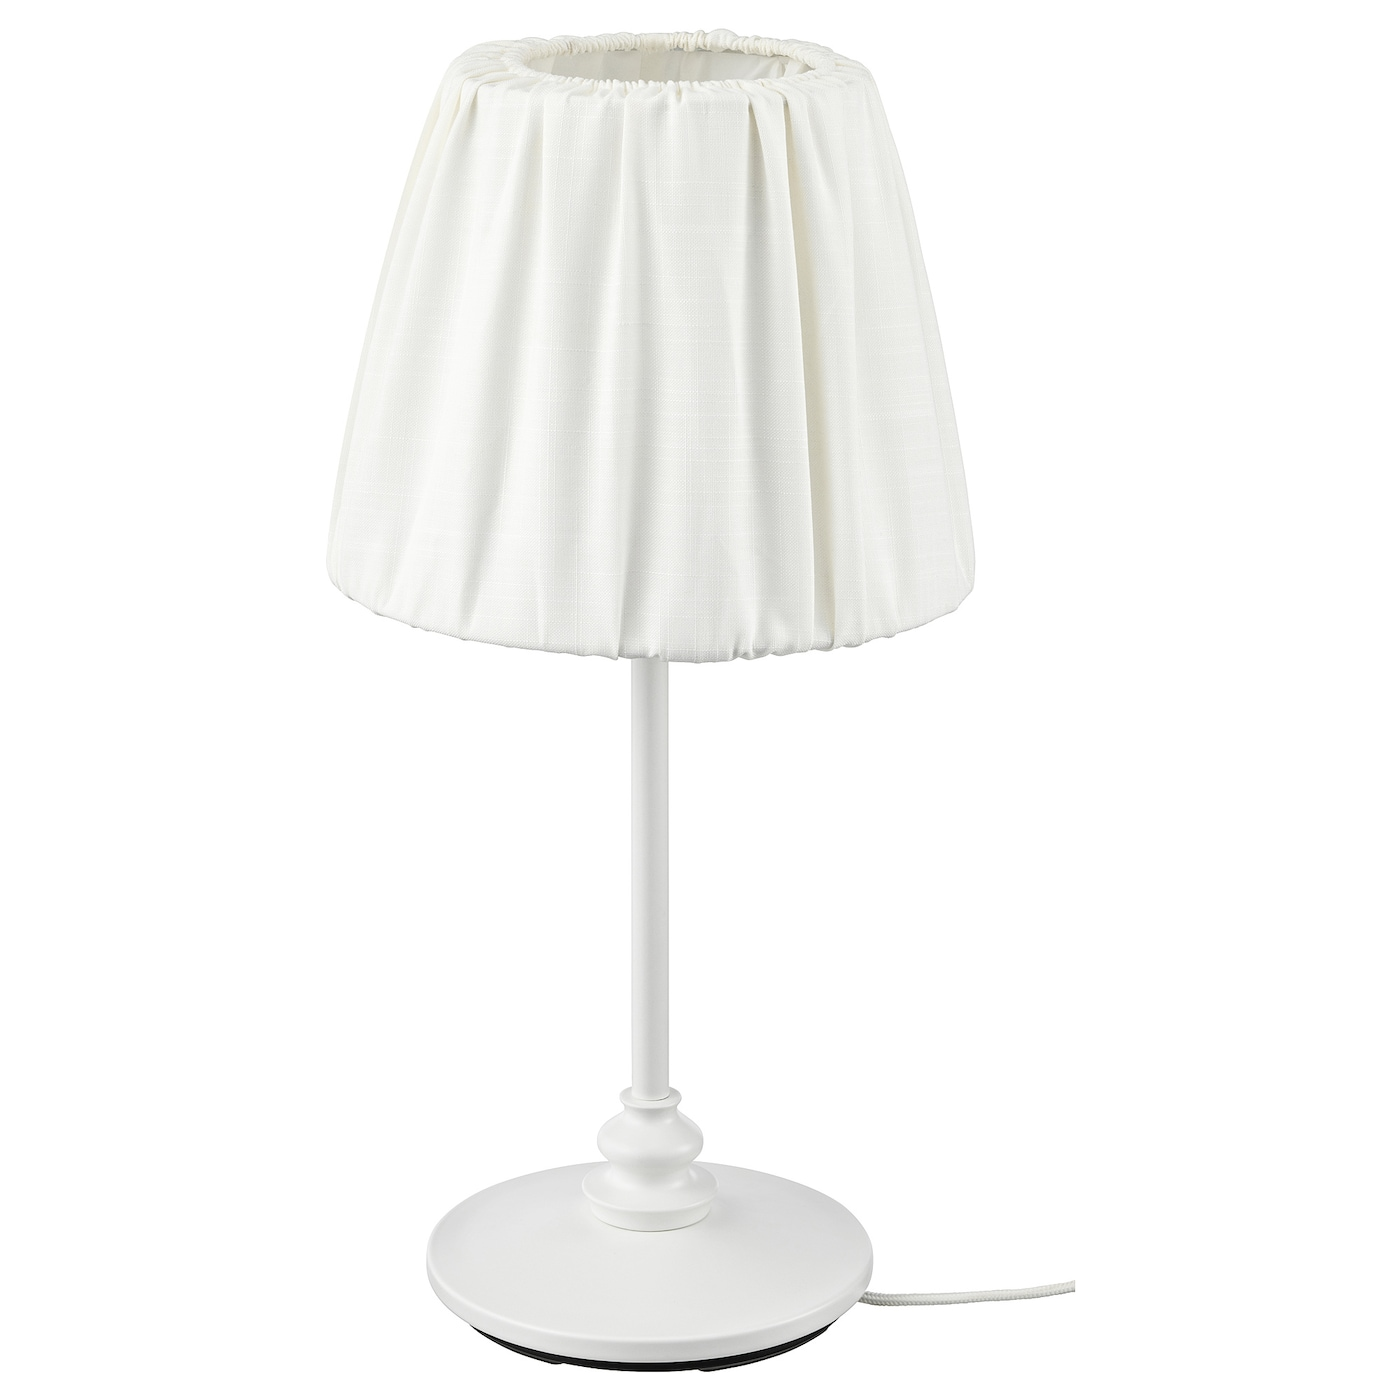 IKEA ÖSTERLO table lamp